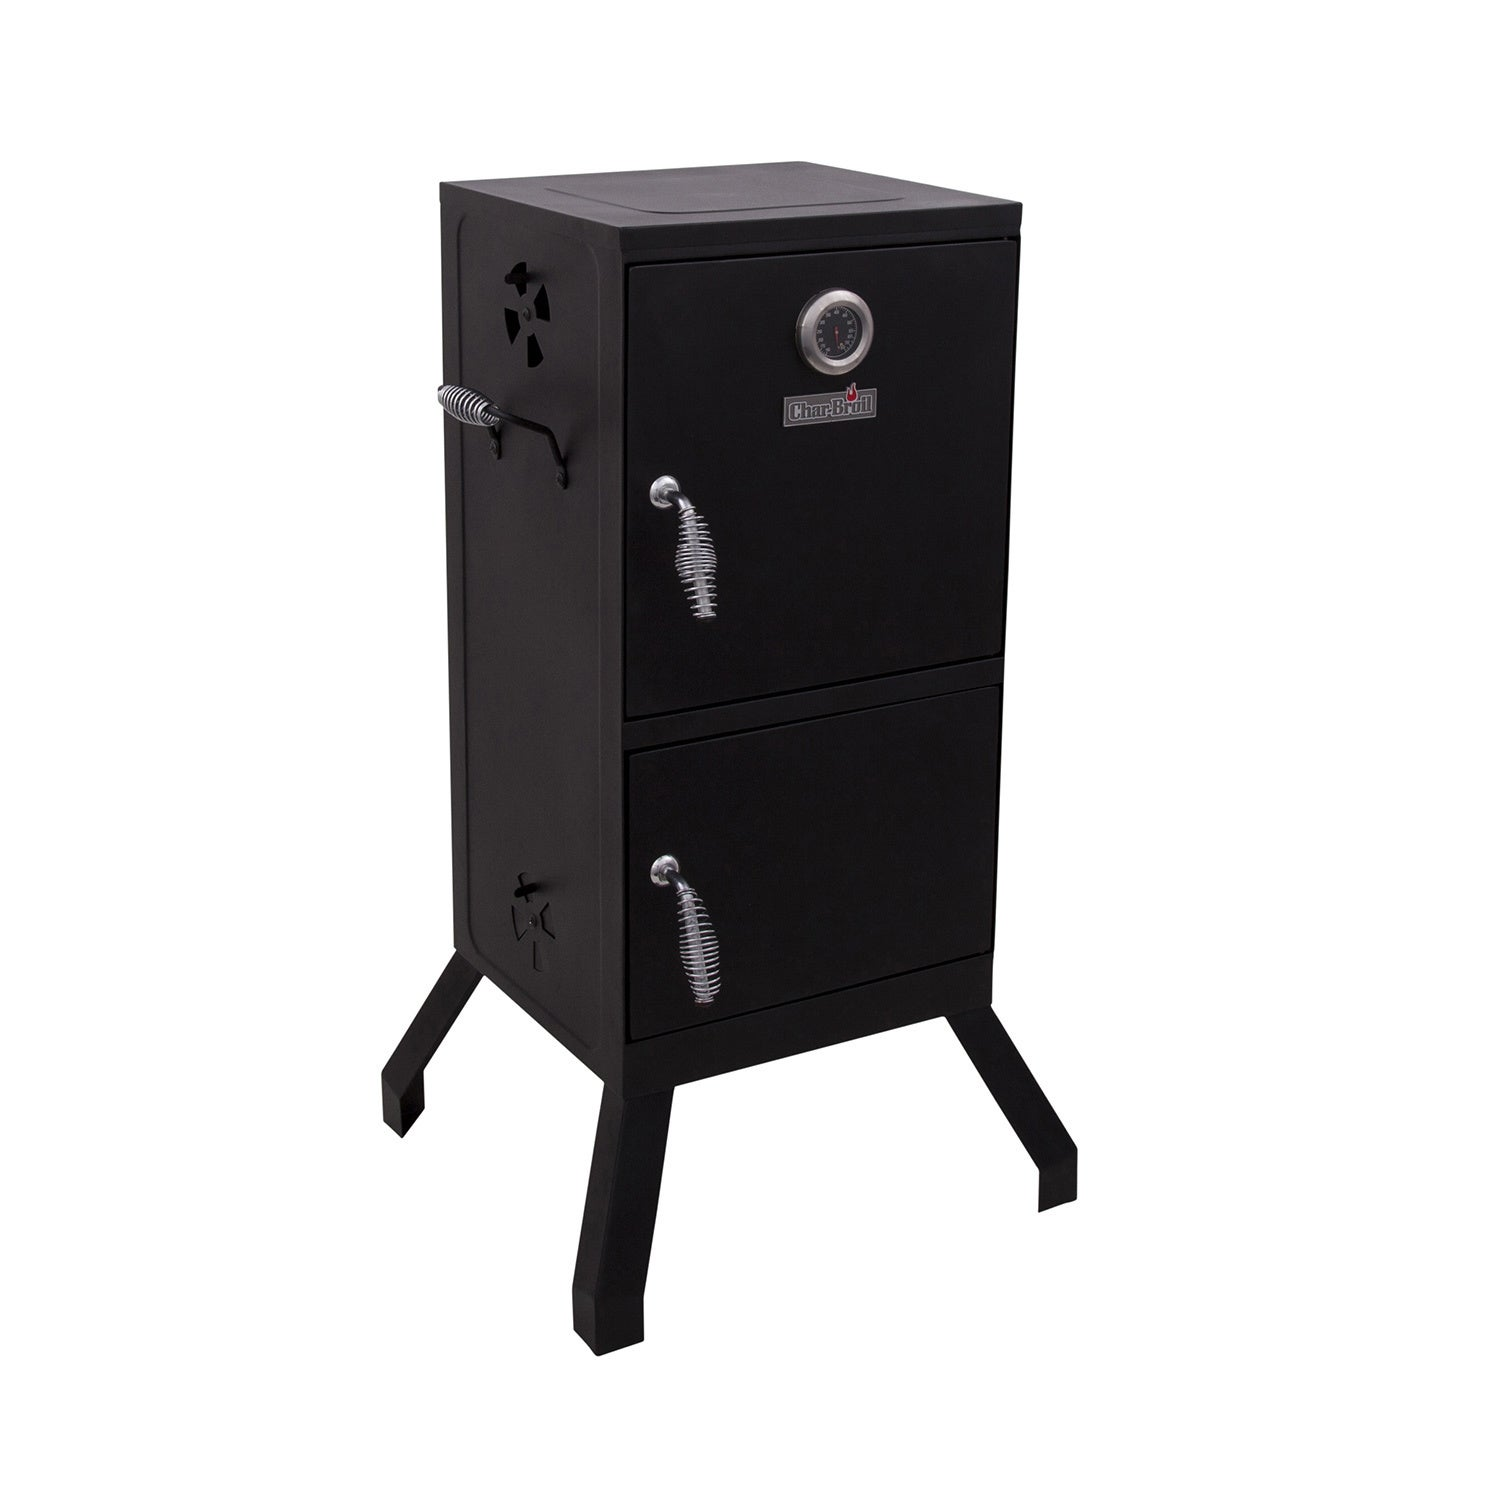 CHAR-BROIL Charcoal Smokers Char Broil Vertical BBQ Grill...